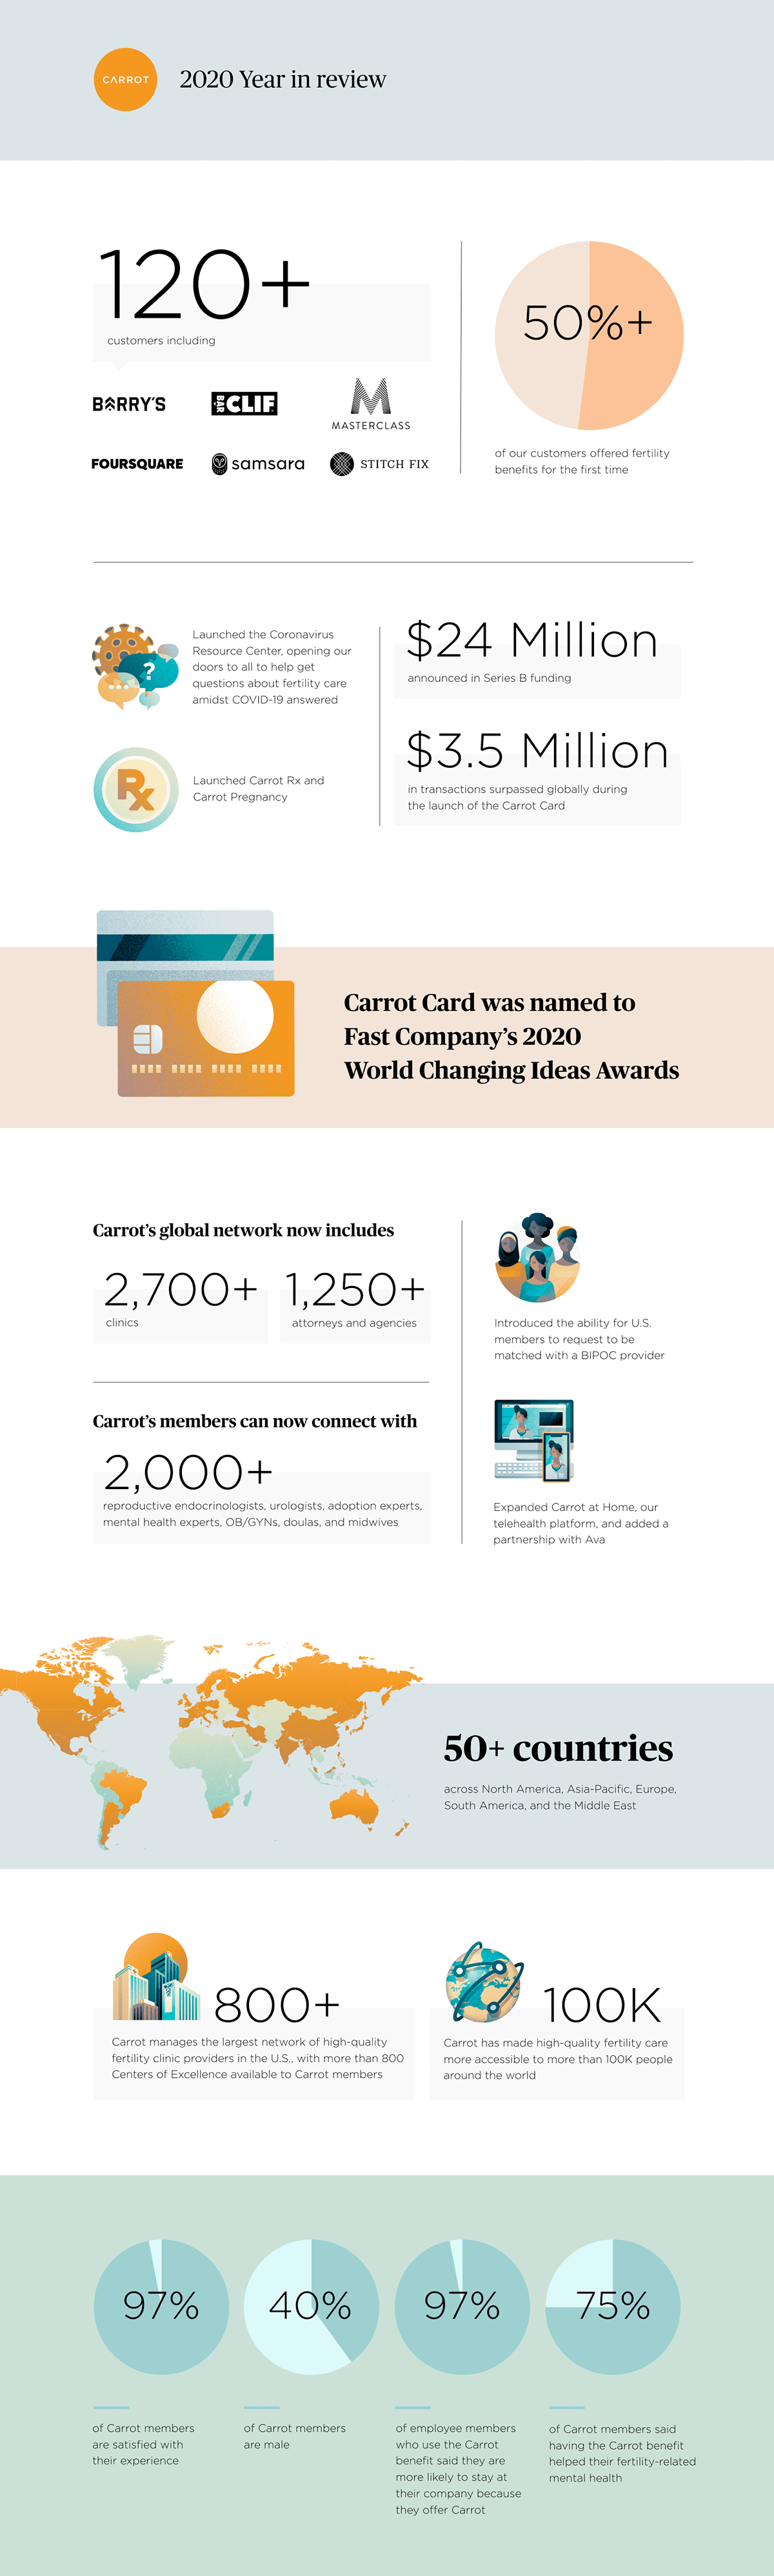 Carrot's 2020 year in review